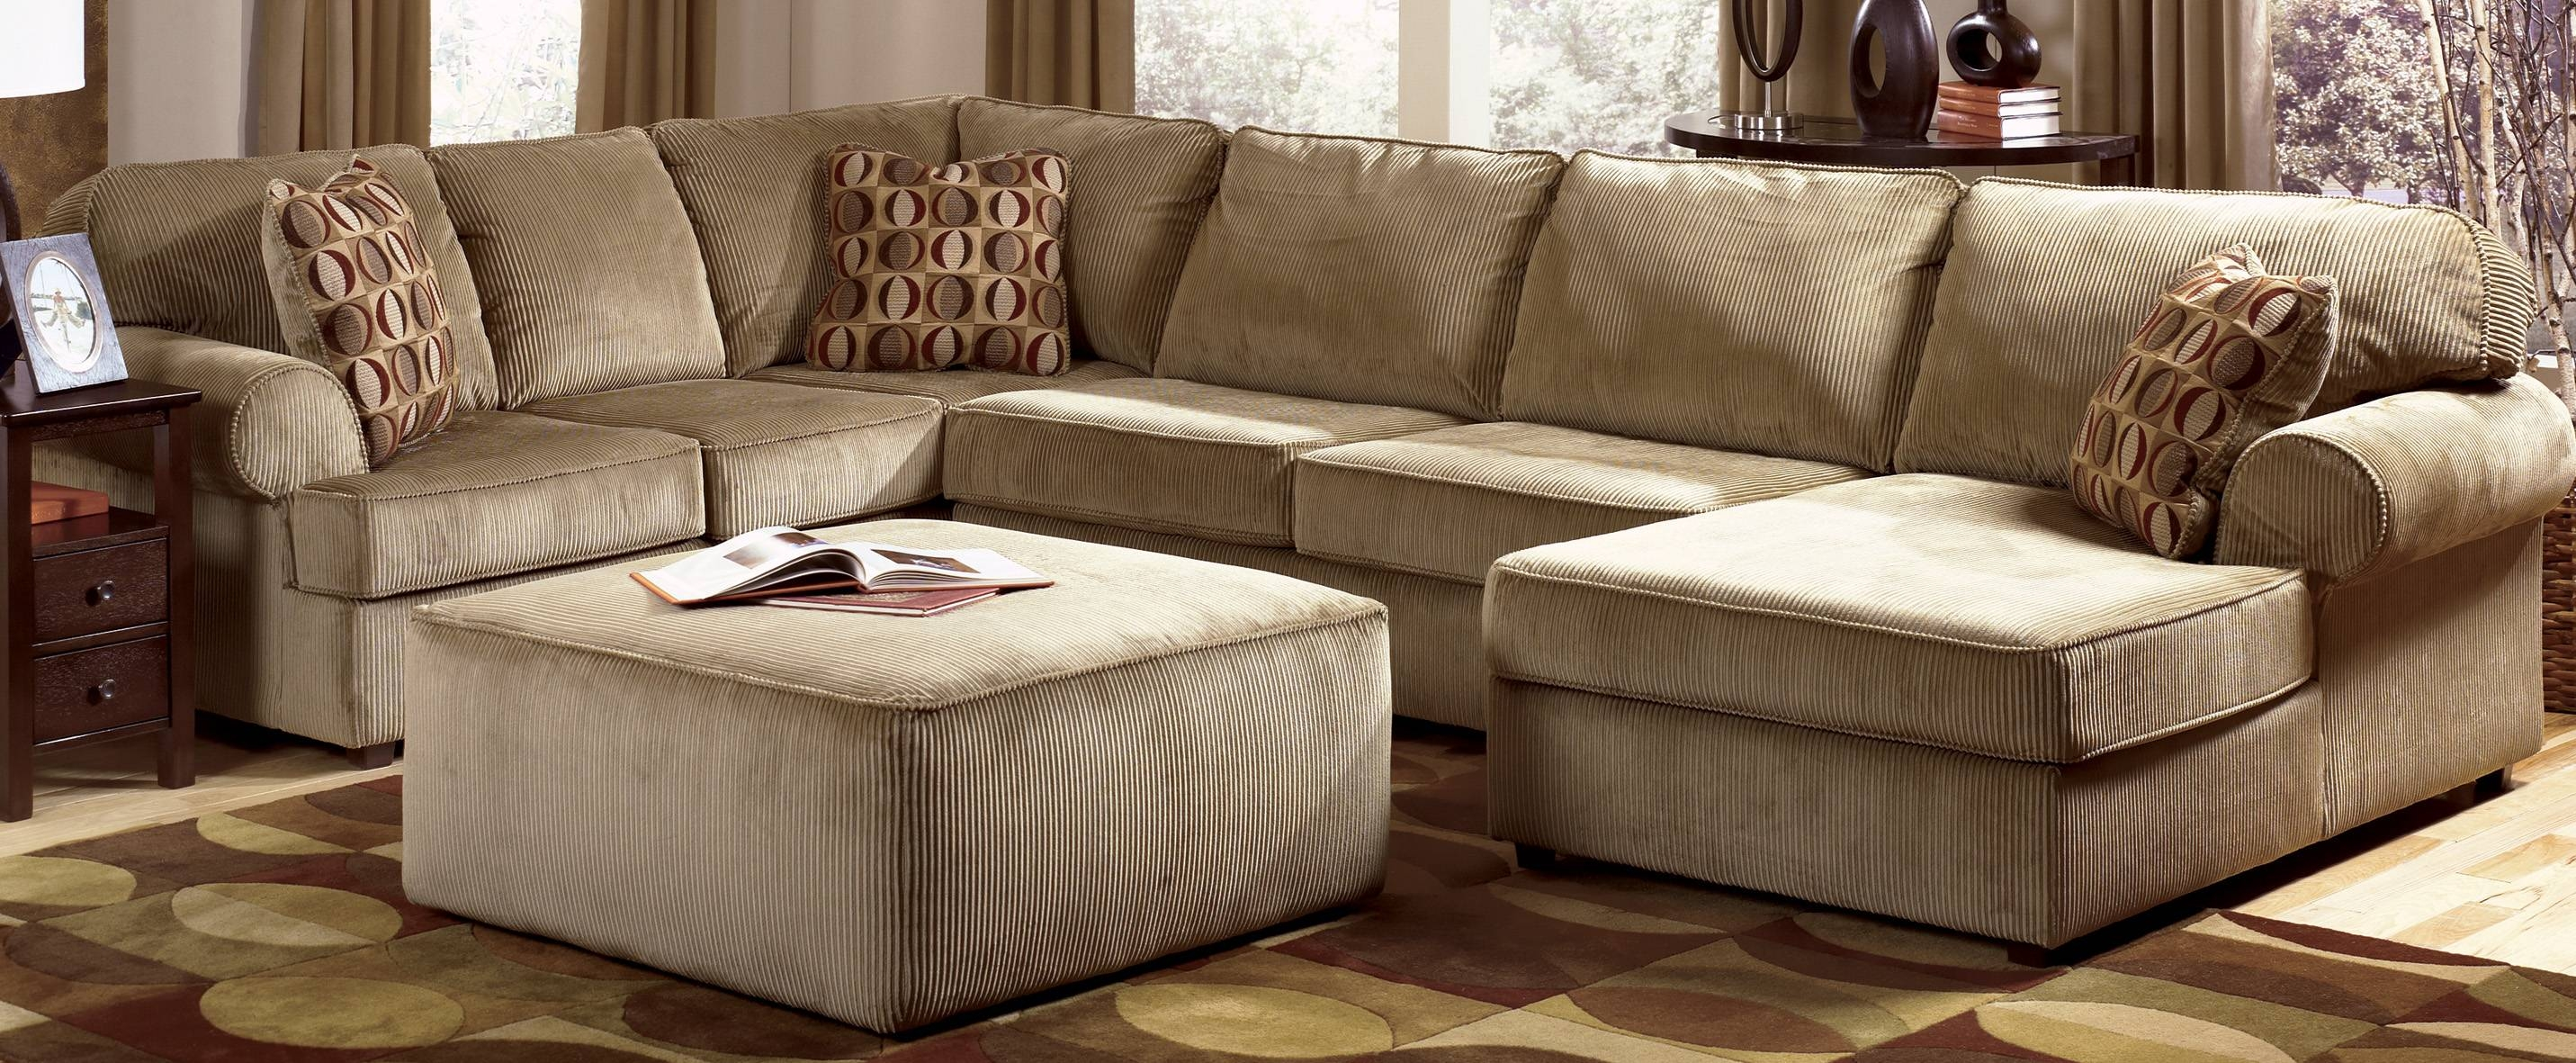 Living Room: Cool Affordable Sectional Sofas For Elegant Living pertaining to Inexpensive Sectional Sofas for Small Spaces (Image 20 of 30)